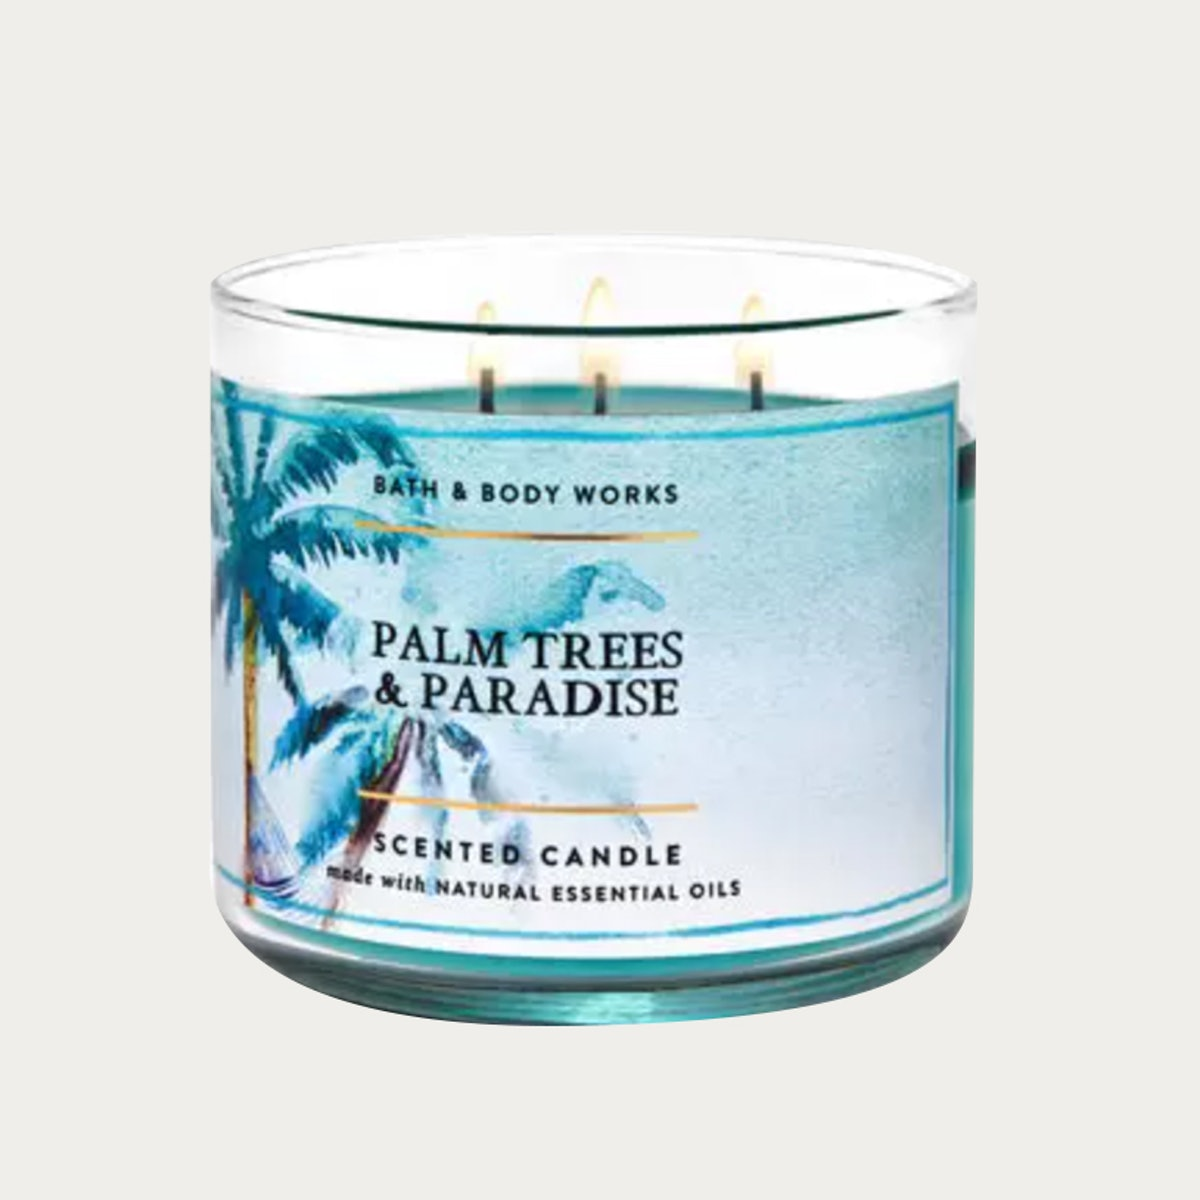 Palm Trees & Paradise 3-Wick Candle